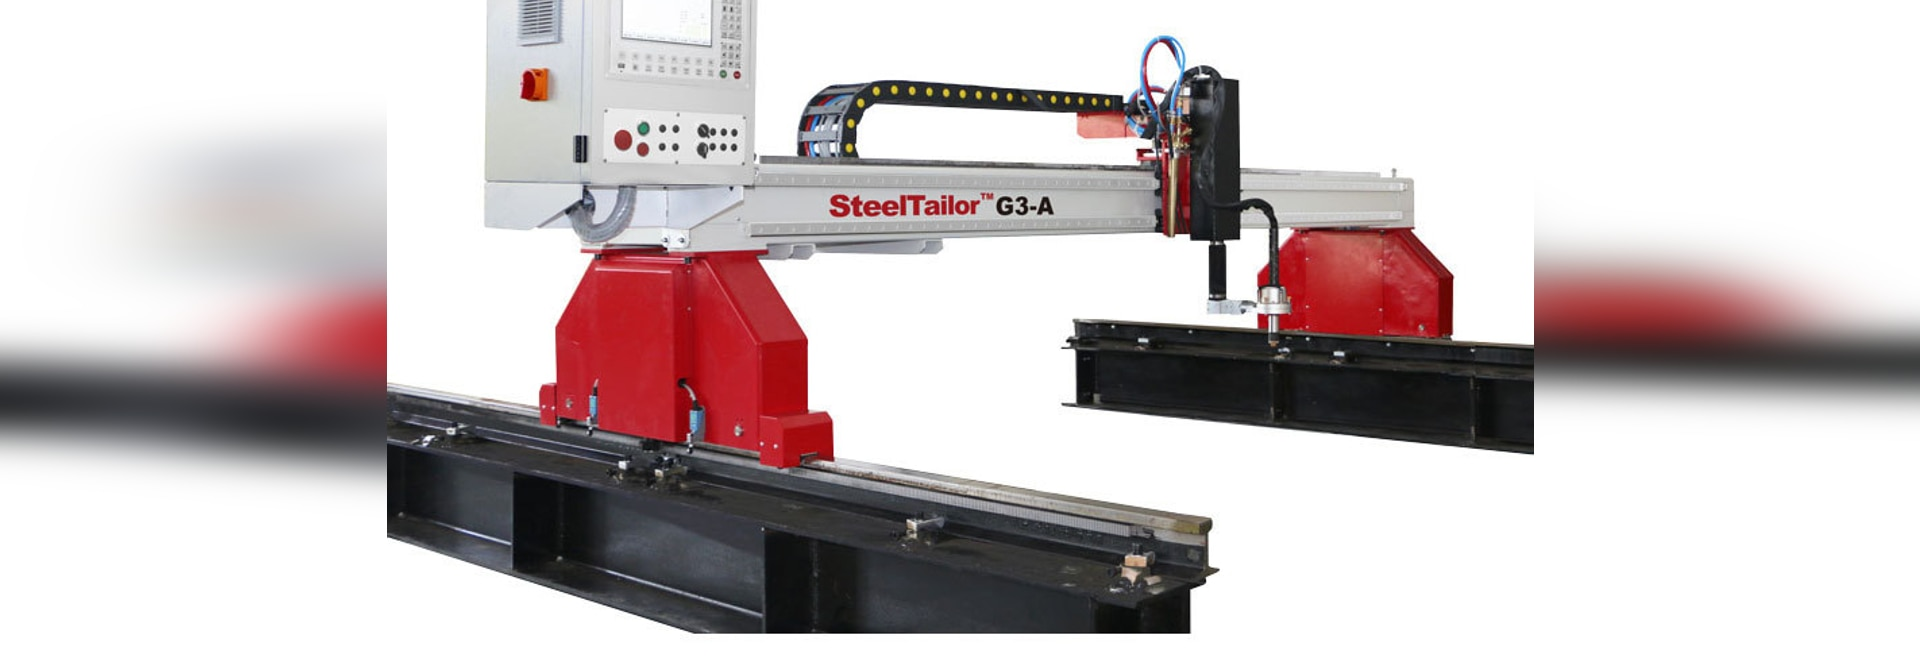 SteelTailor G3 gantry CNC cutting machine